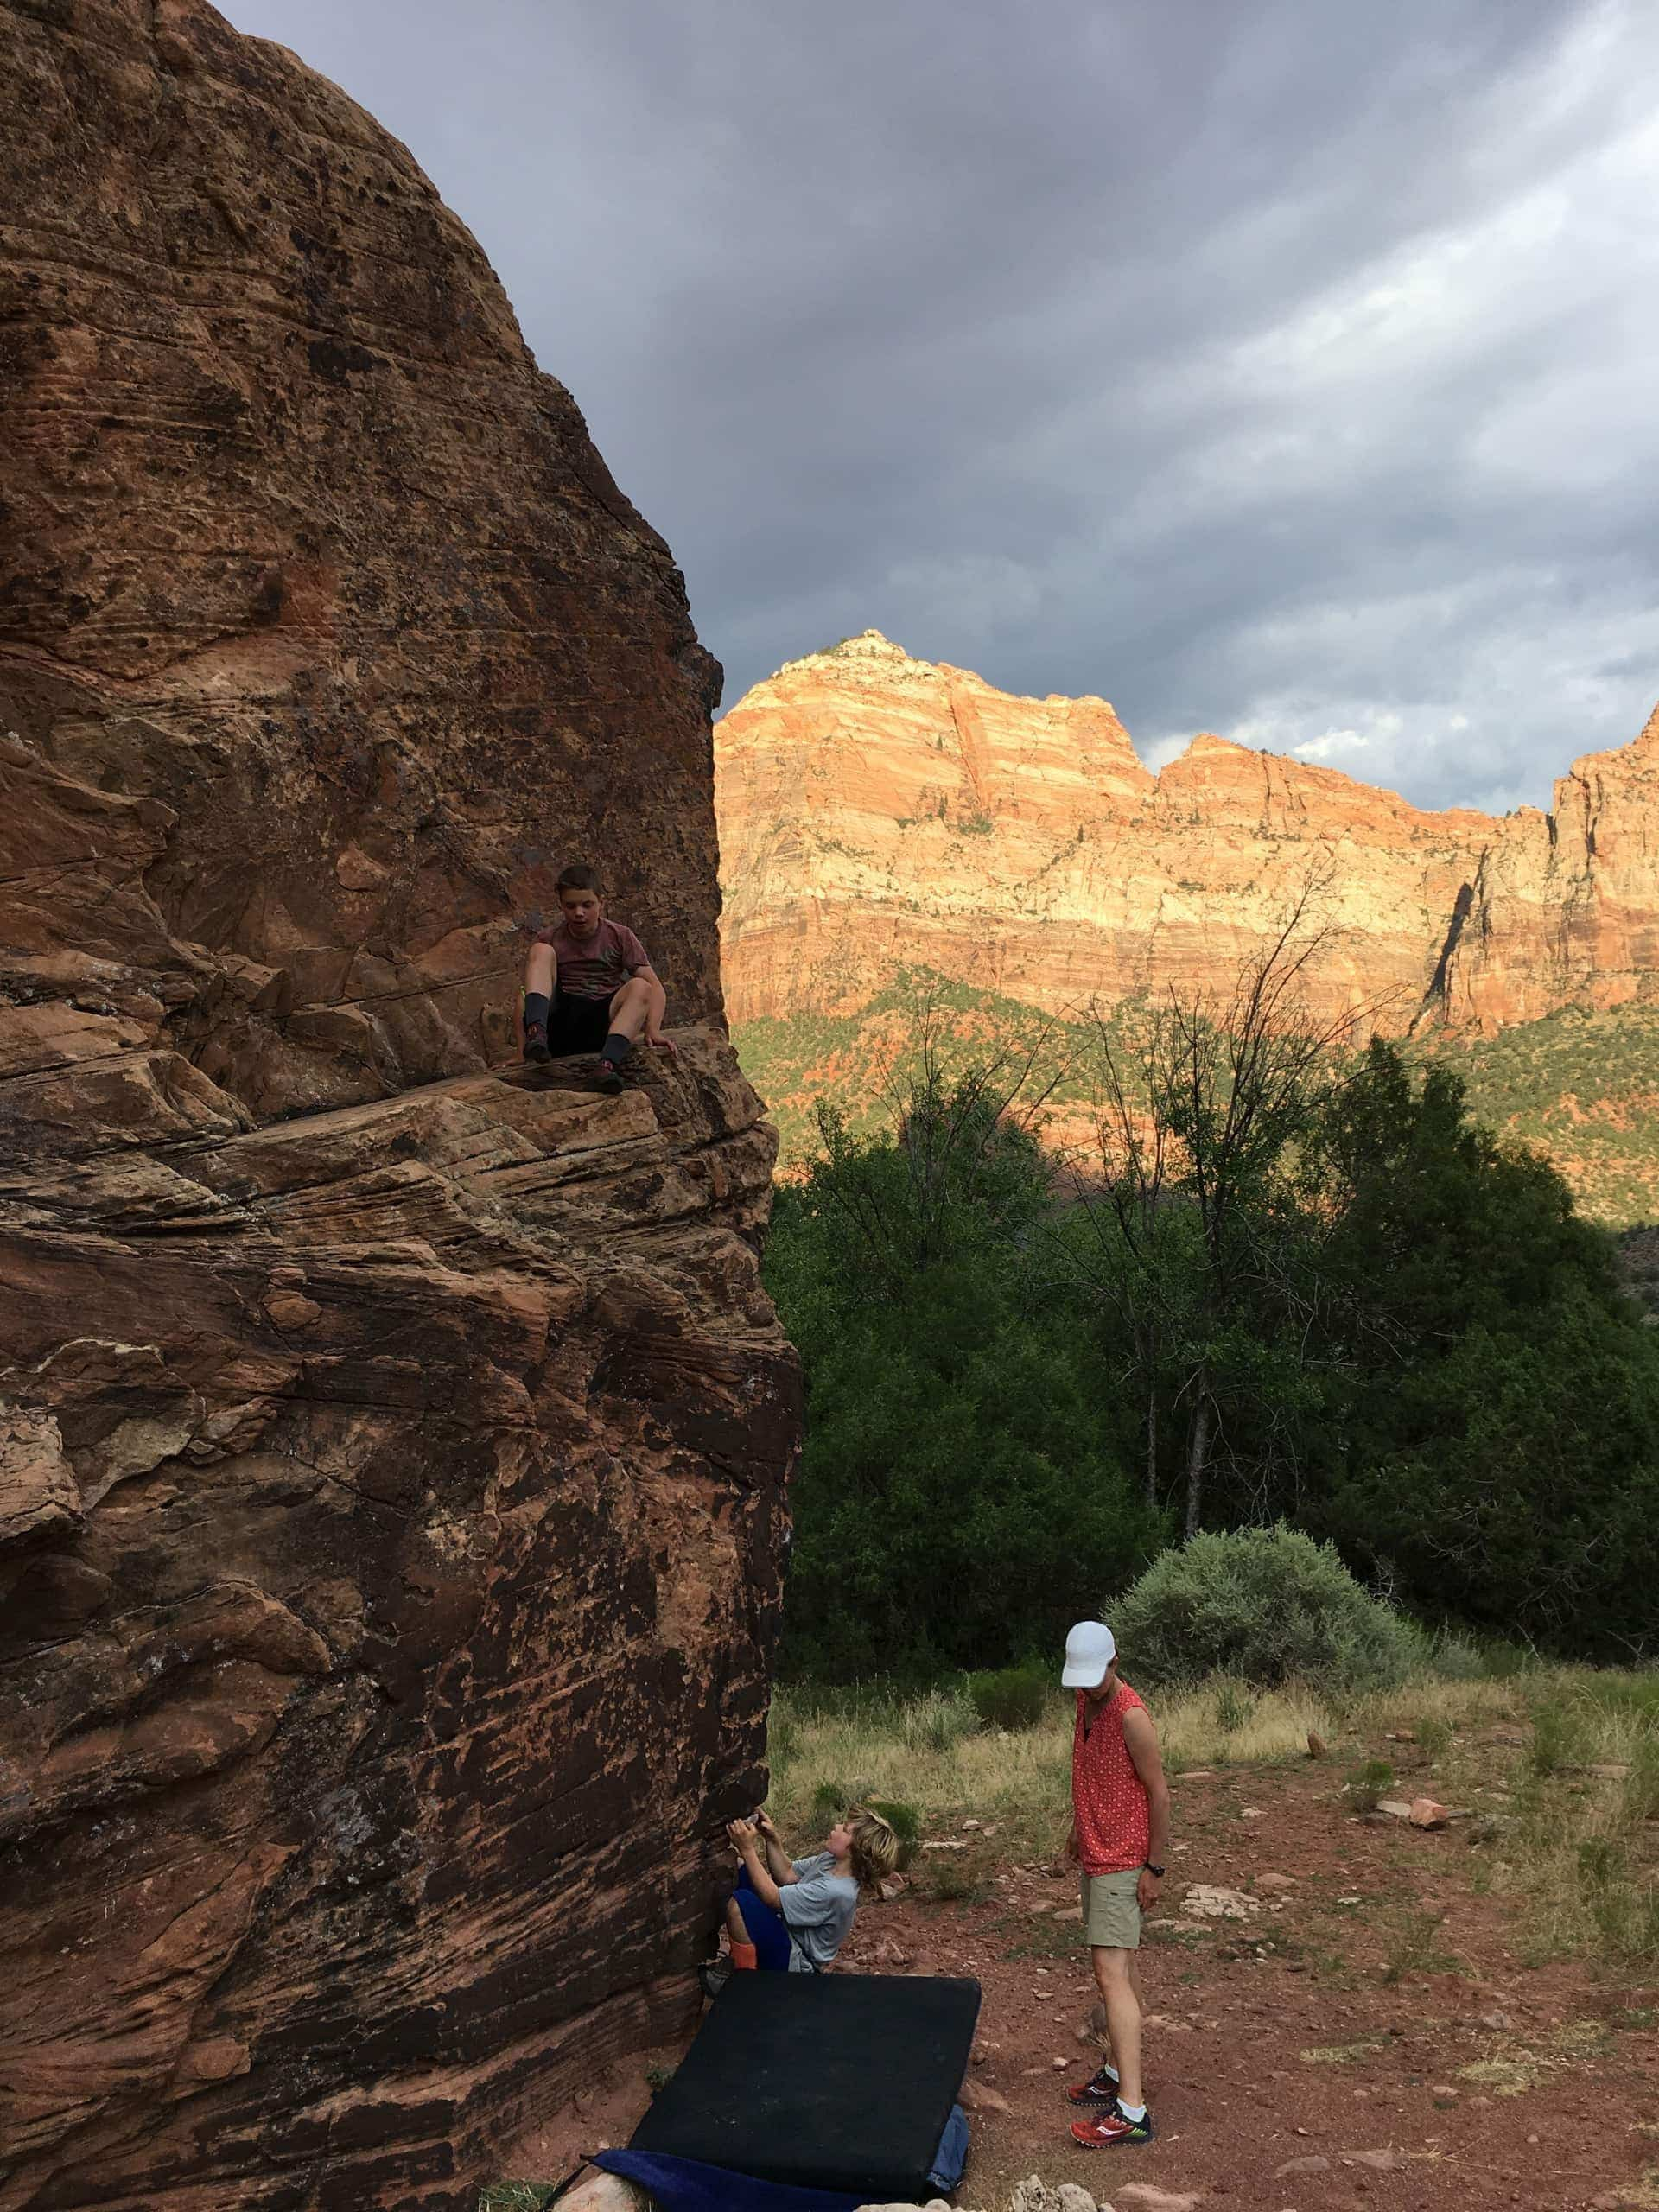 Family bouldering session in Zion